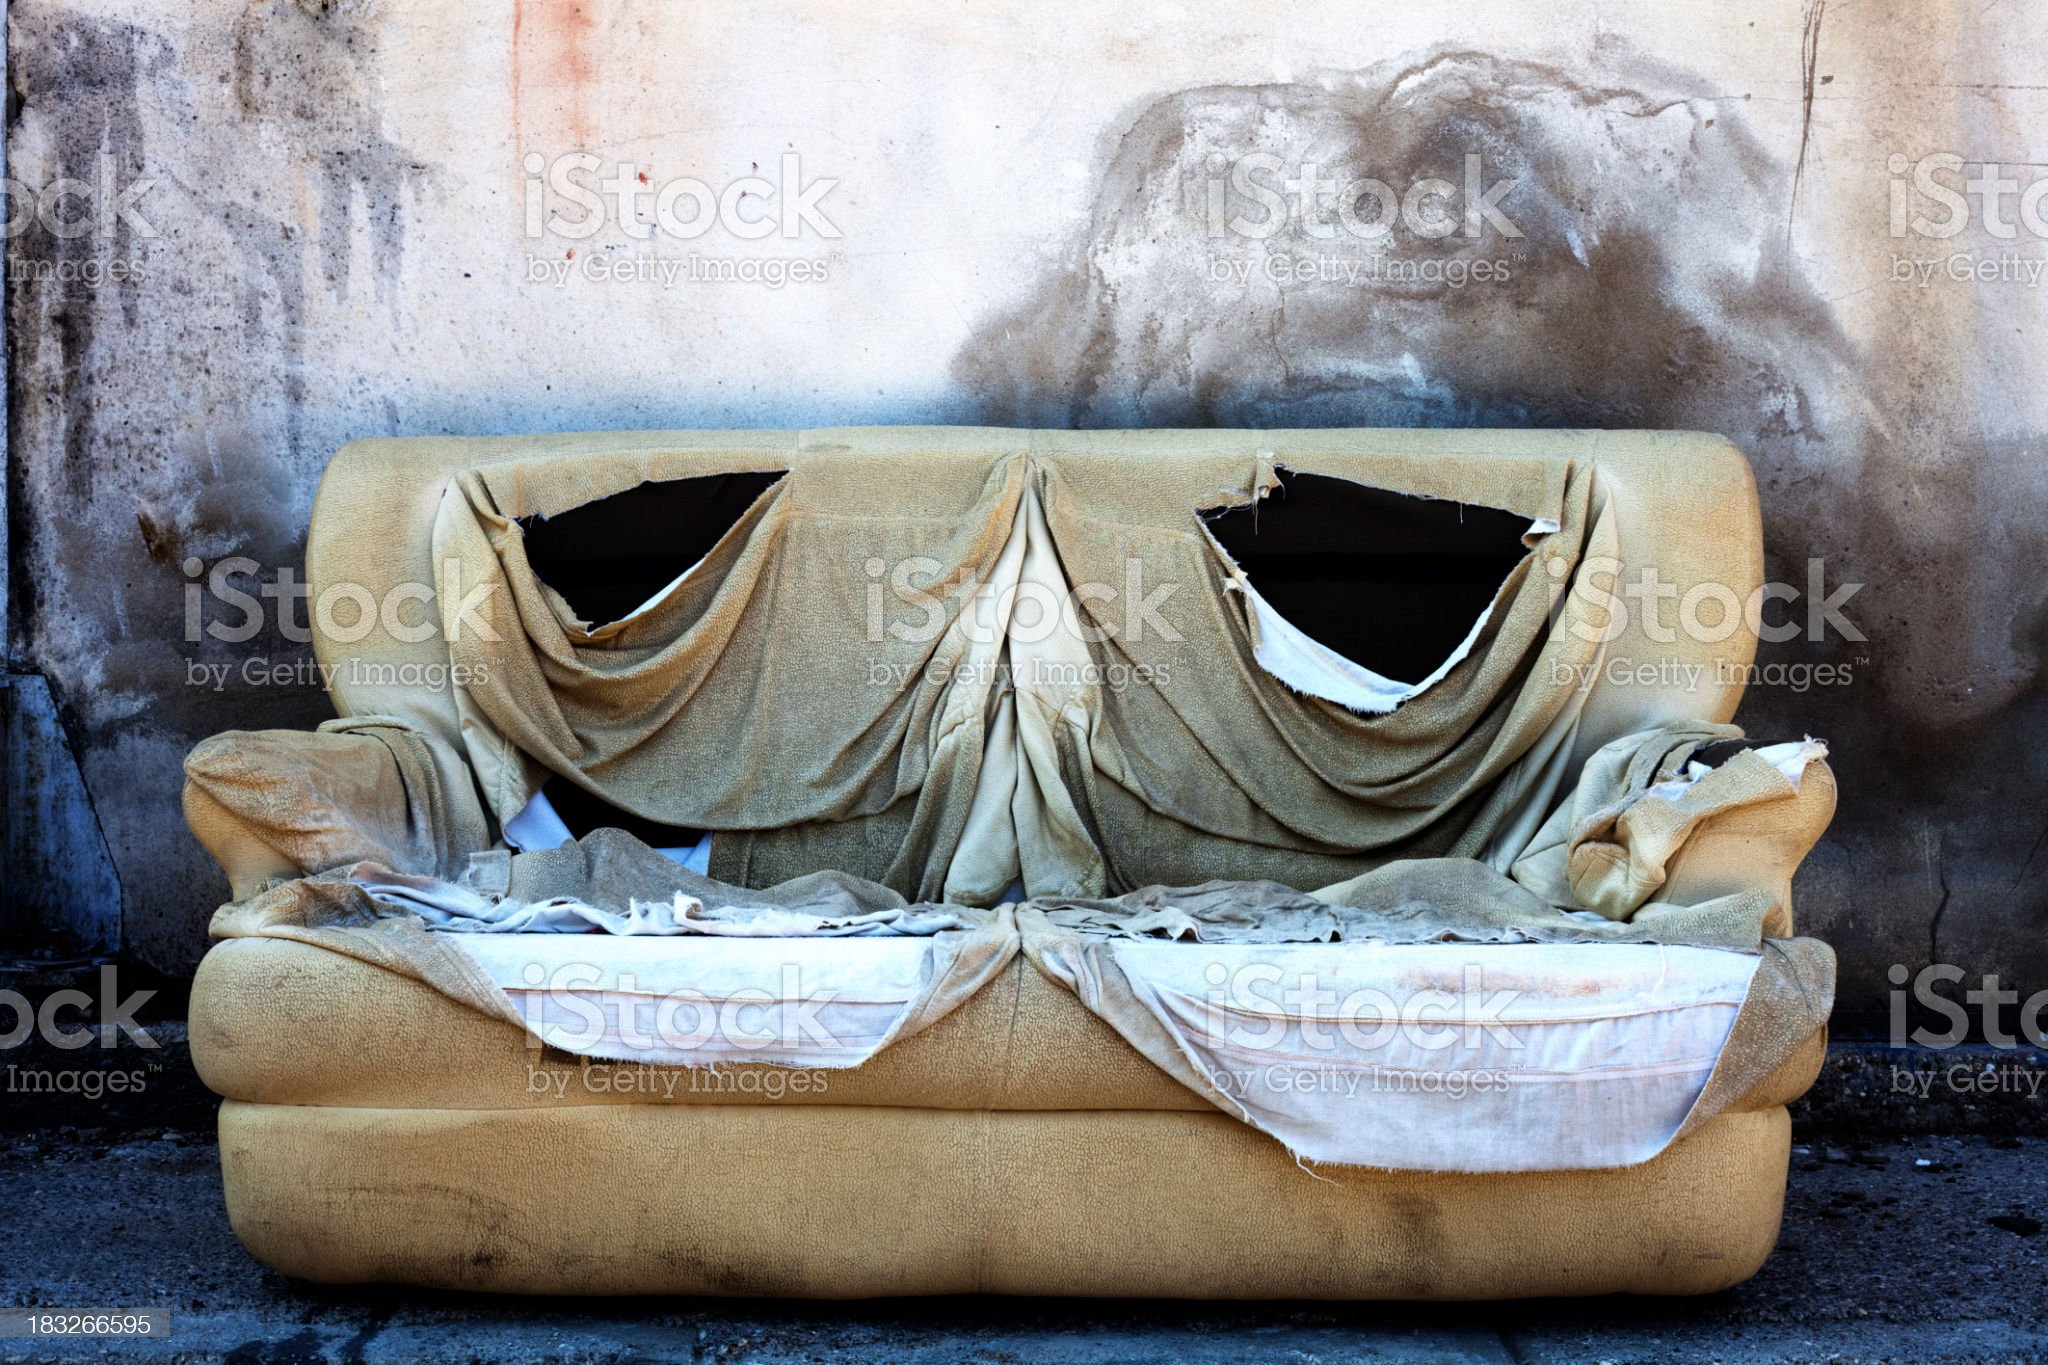 Burnt Abandoned Sofa/Background royalty-free stock photo